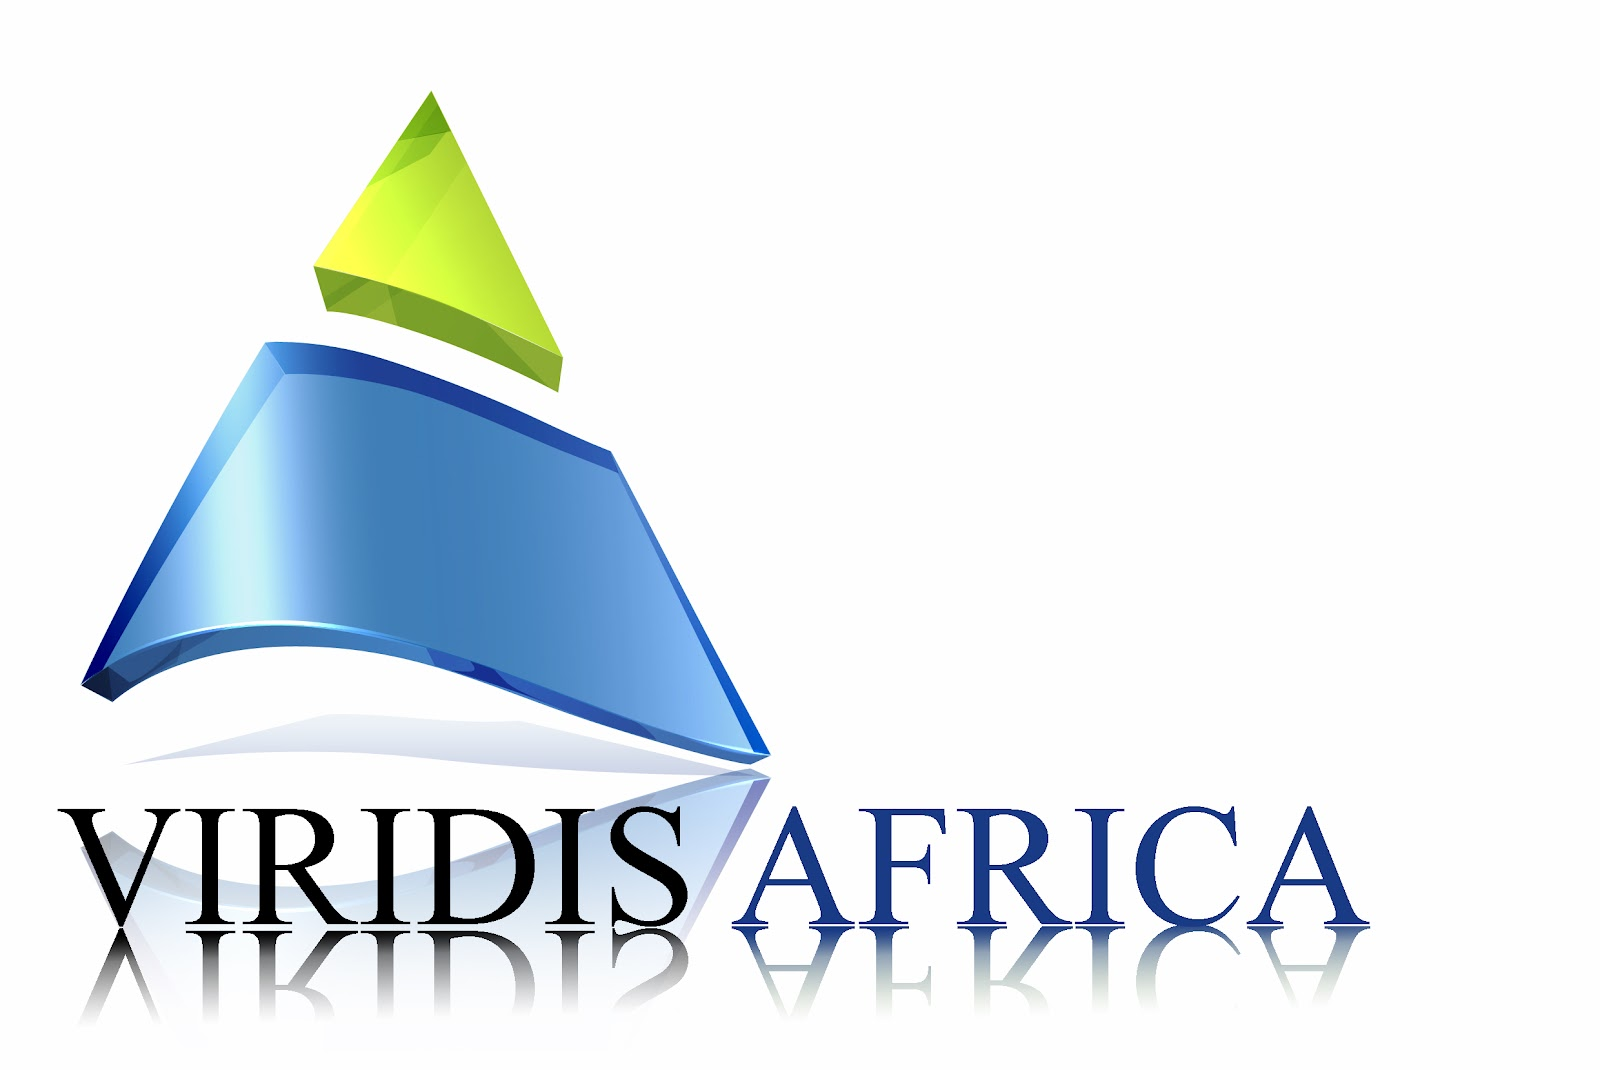 Viridis Africa showcasing cleantech technologies appropriate for Africa